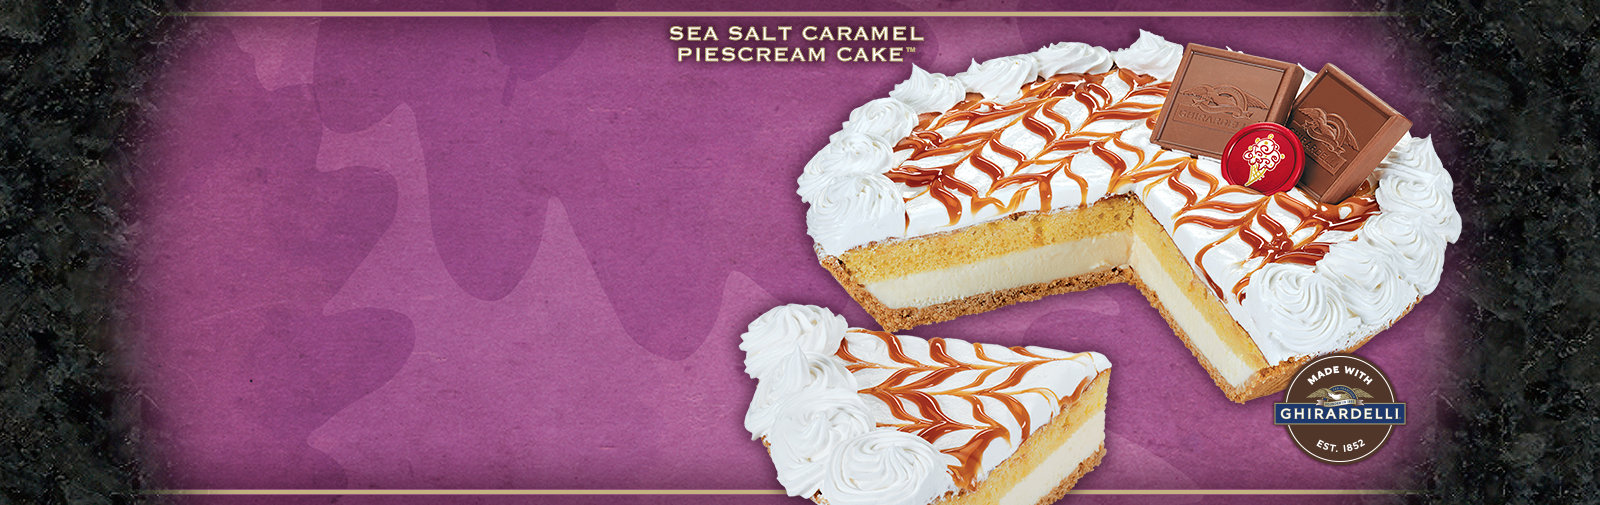 Try our new PieScream Cake™ complete with layers of Graham Creacker Pie crust, Sea Salt Caramel Ice Cream & Yellow Cake.